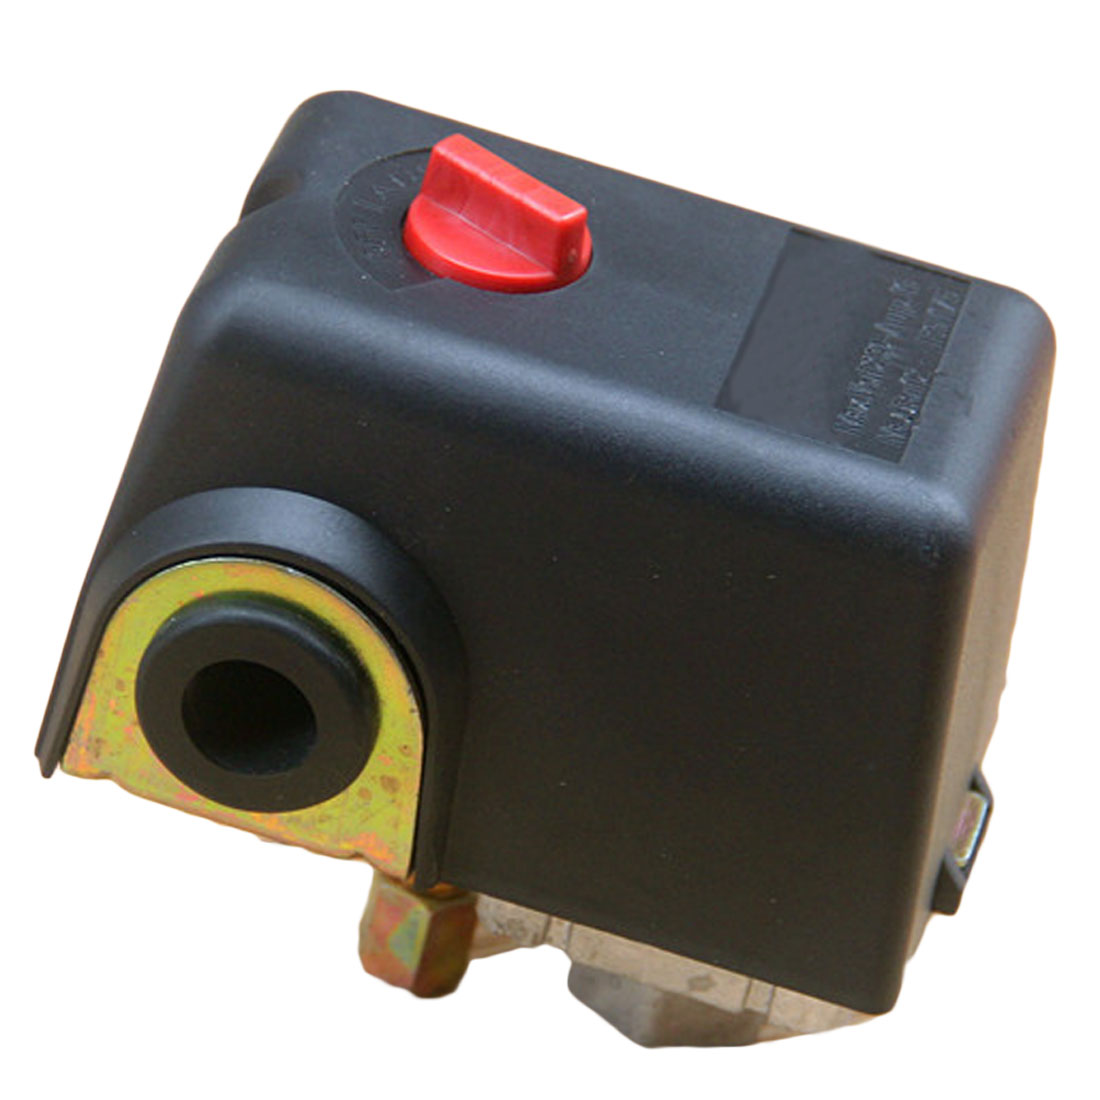 Tool Air Compressor Horizontal Single Hole Switch 220V 10A Pressure Switch For Compressor Air Compressors Switch Control Hot 24a 16a 95 125psi manual dual pressure switch control valve for air compressor